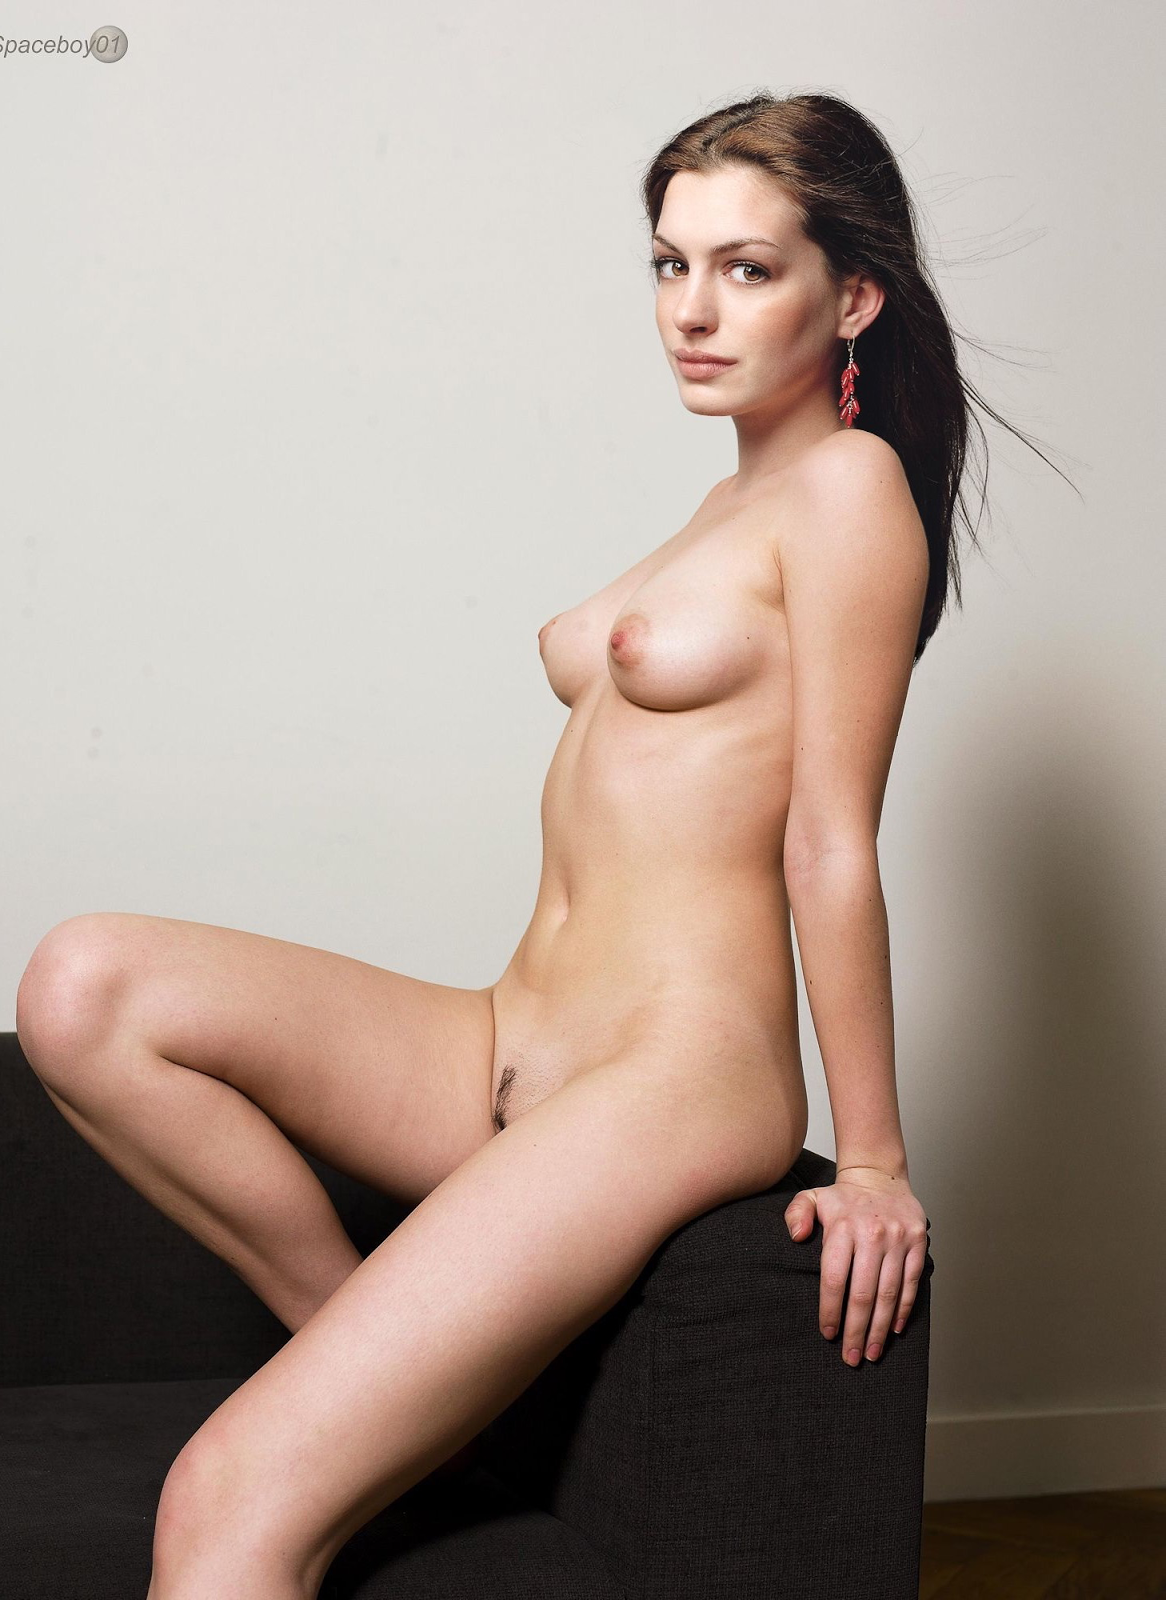 Anne hathaway nude images